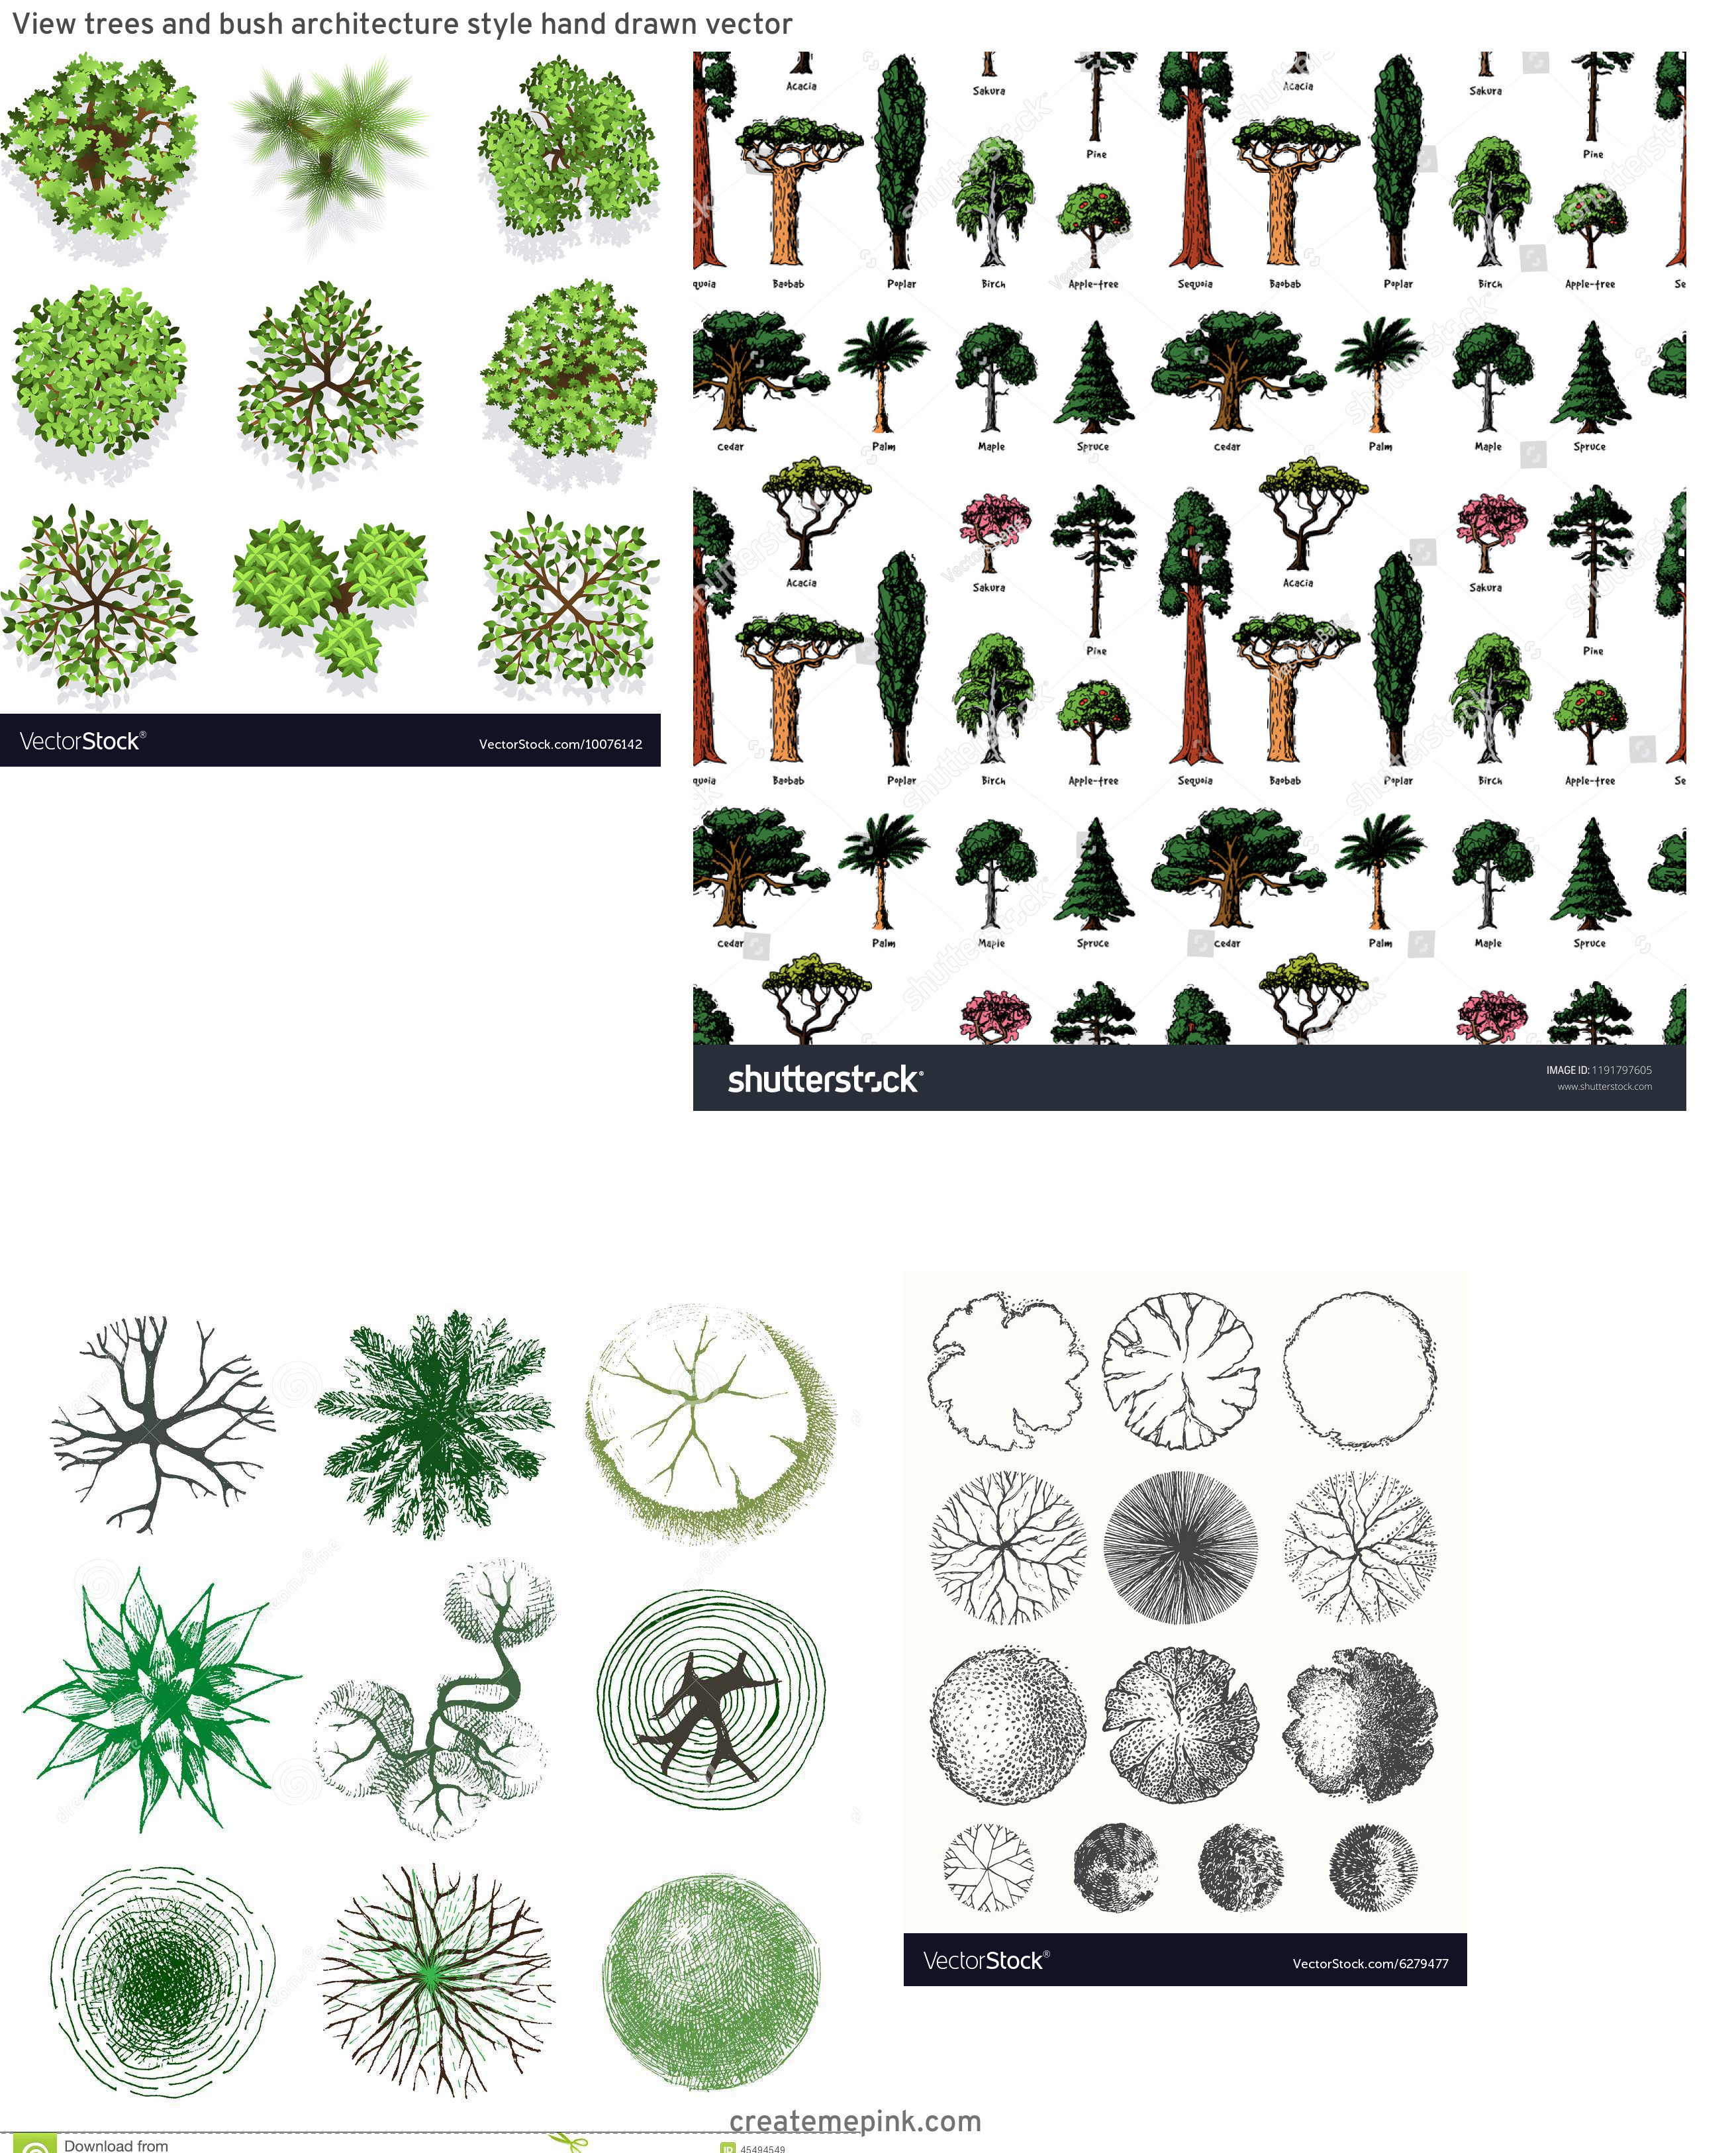 Drawn Free Vector Tree Tops: View Trees And Bush Architecture Style Hand Drawn Vector